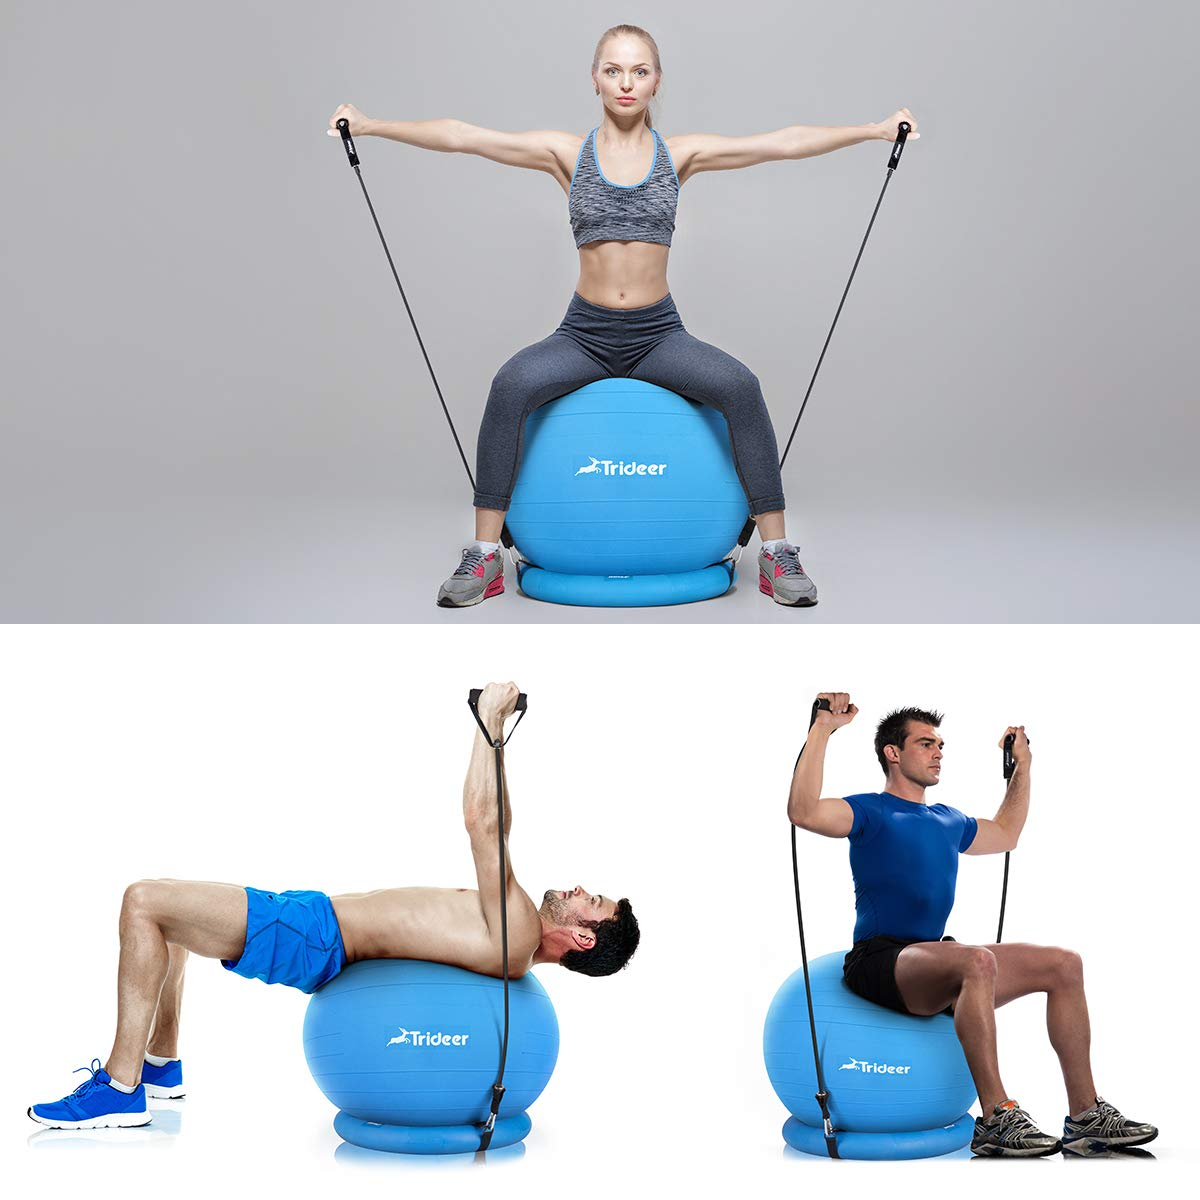 Trideer Ball Chair, Exercise Stability Yoga Ball with Base & Resistance Bands for Home and Office Desk, Flexible Ball Seat with Pump, Improves Balance, Core Strength & Posture (Dark Blue, 65cm) by Trideer